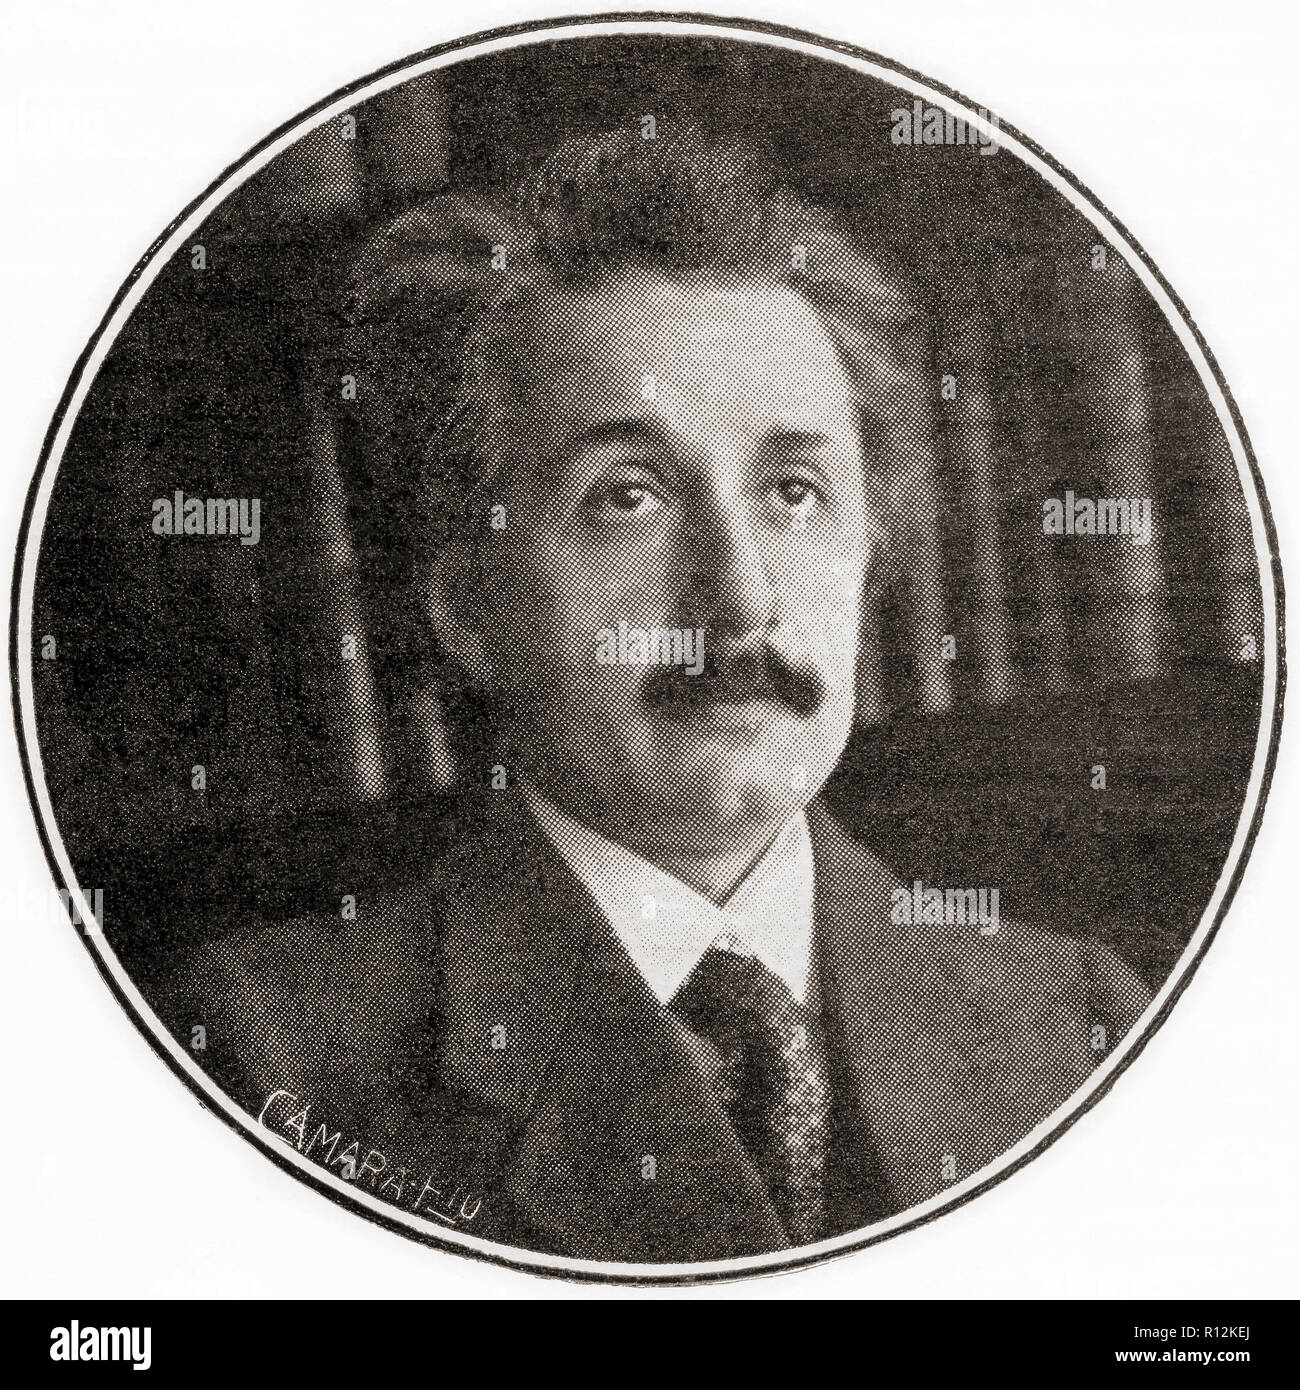 Albert Einstein, 1879 – 1955. German-born theoretical physicist, winner of the 1921 Nobel Prize in Physics.  From La Esfera, published 1921. Stock Photo